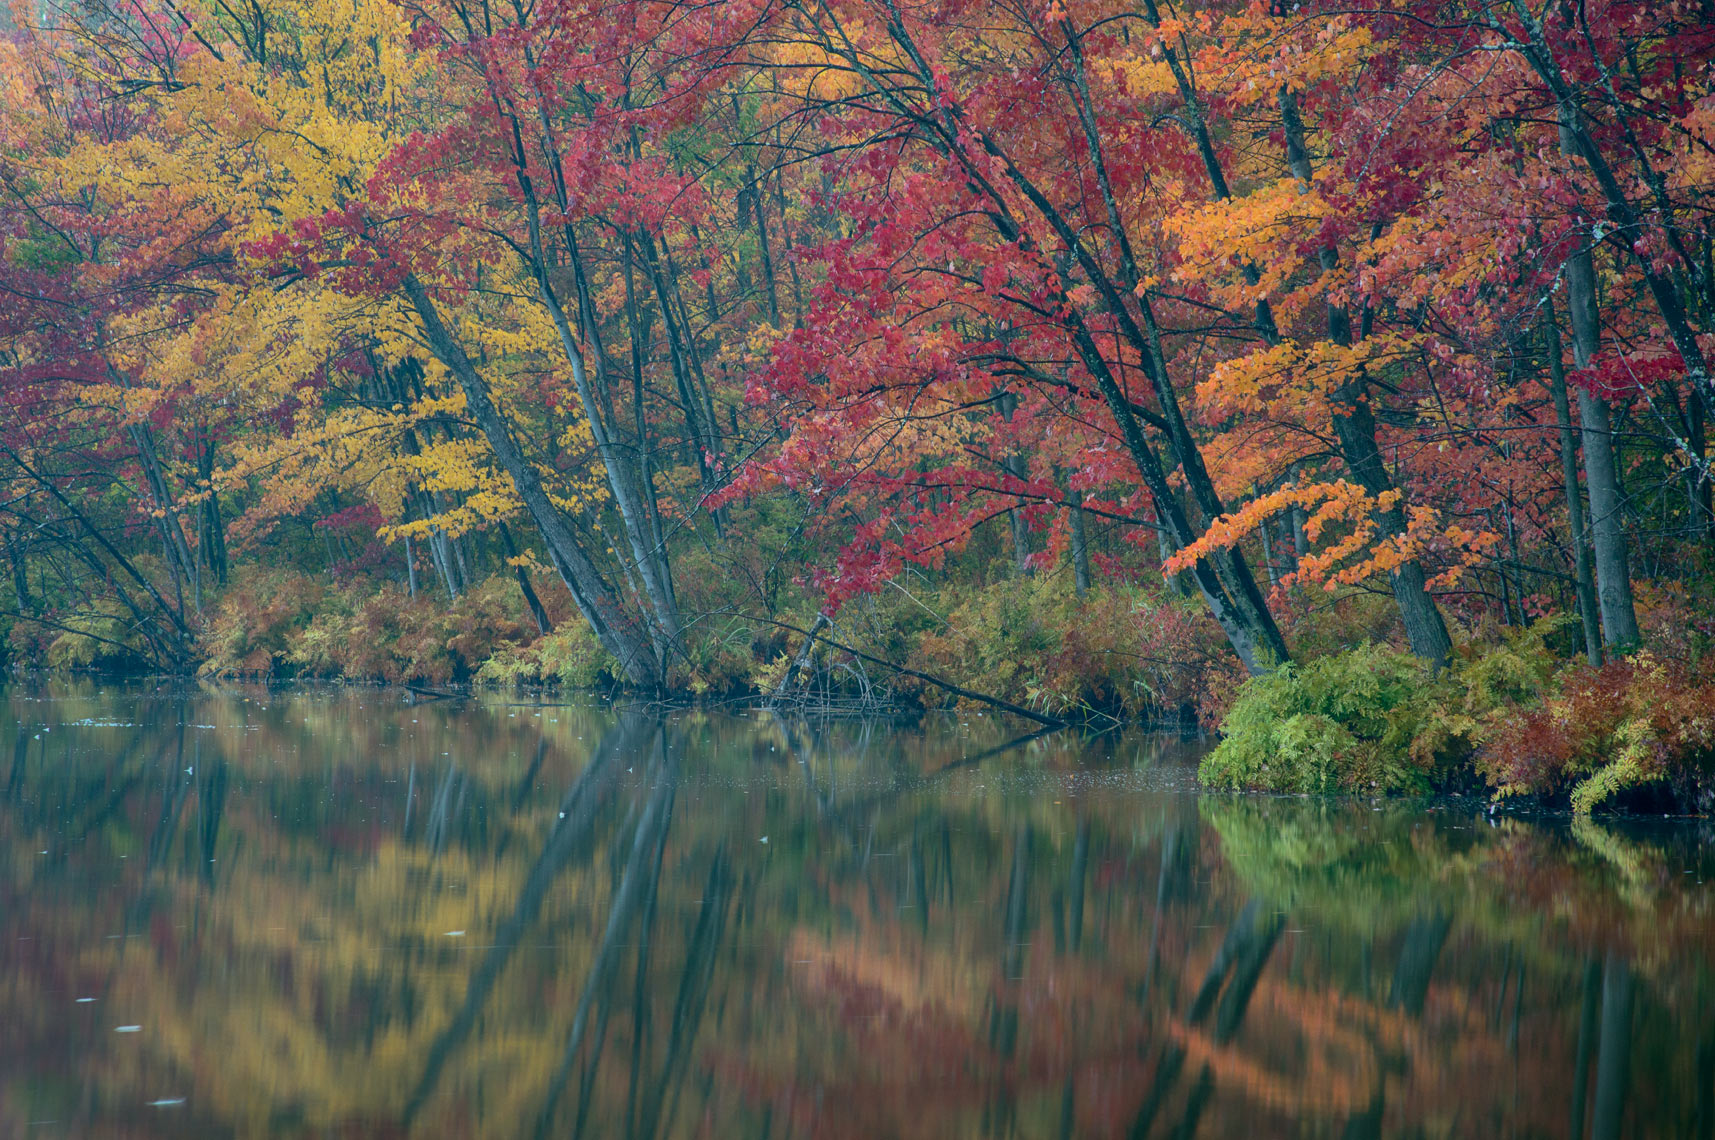 Fall Foliage, Beaver Lake Nature Center in Autumn, New York State